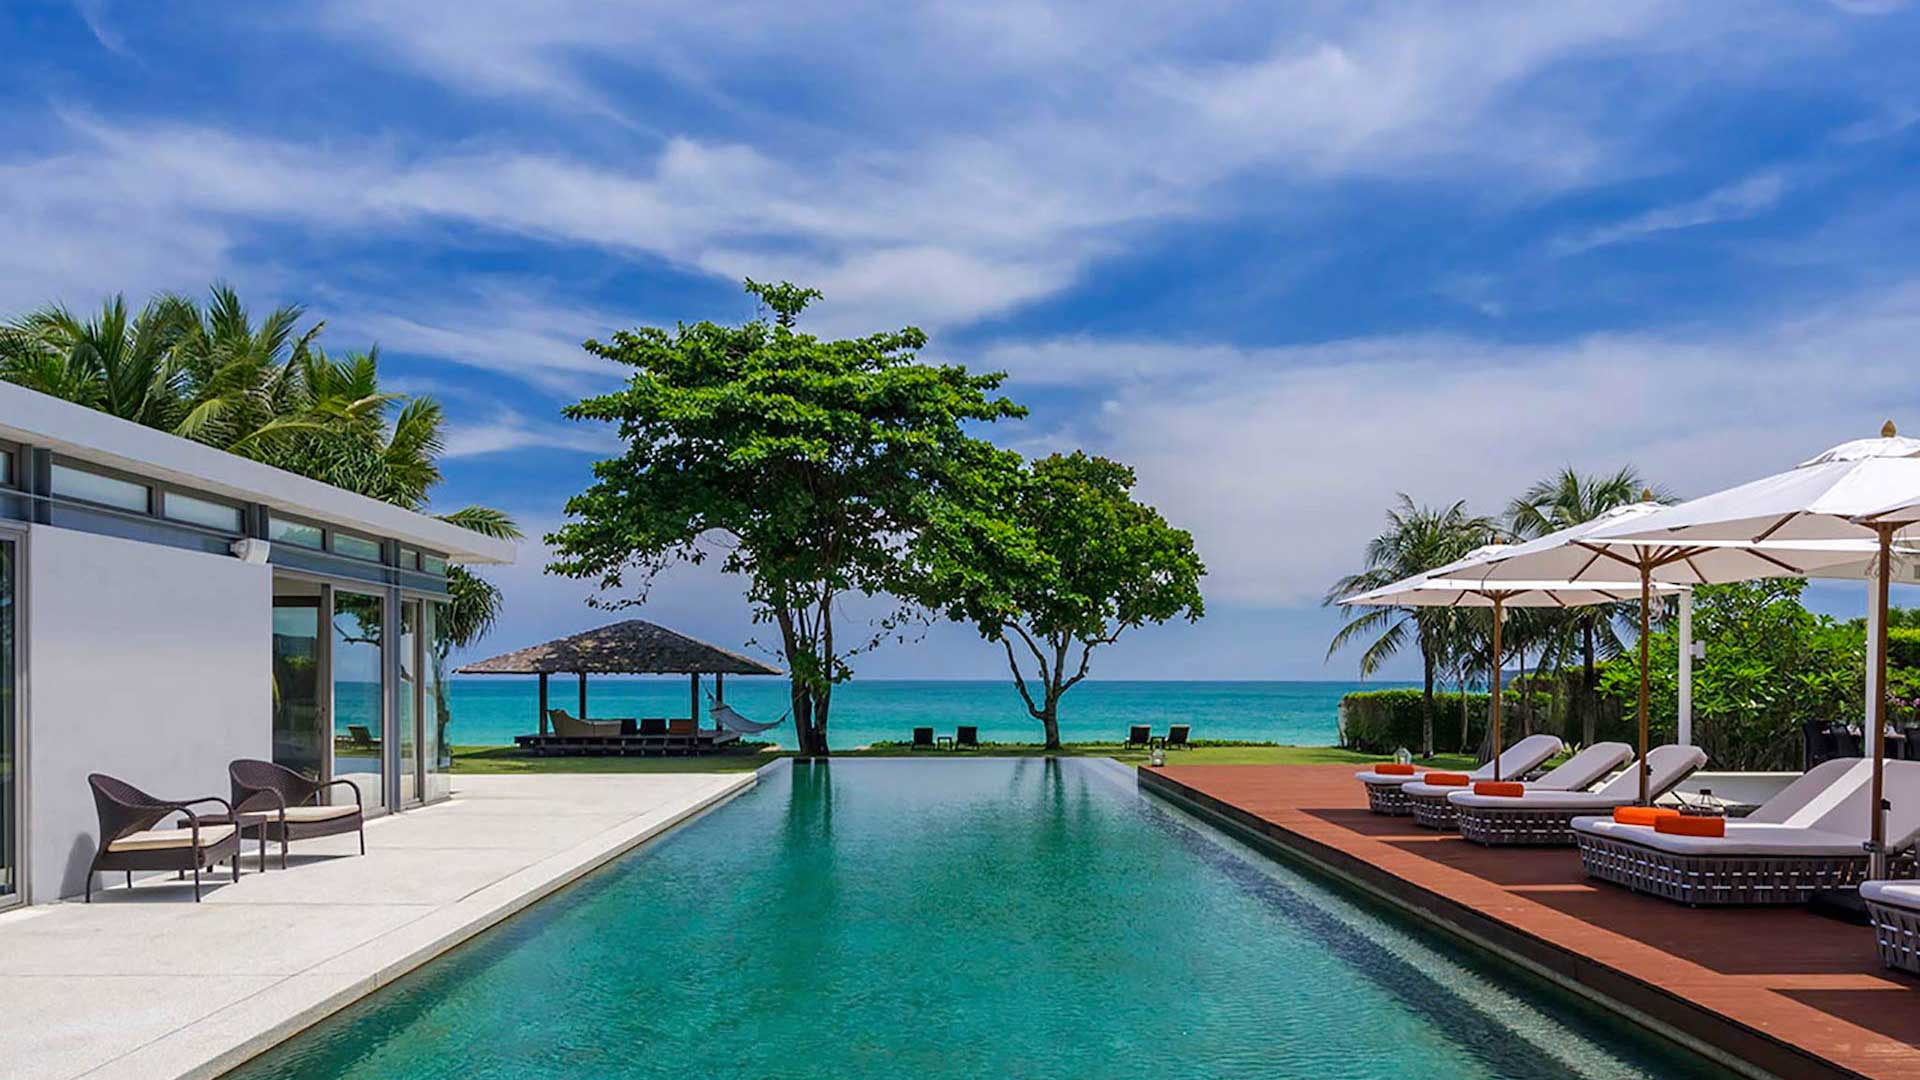 Villa Sava Beach Villas - Cielo, Location à Phuket